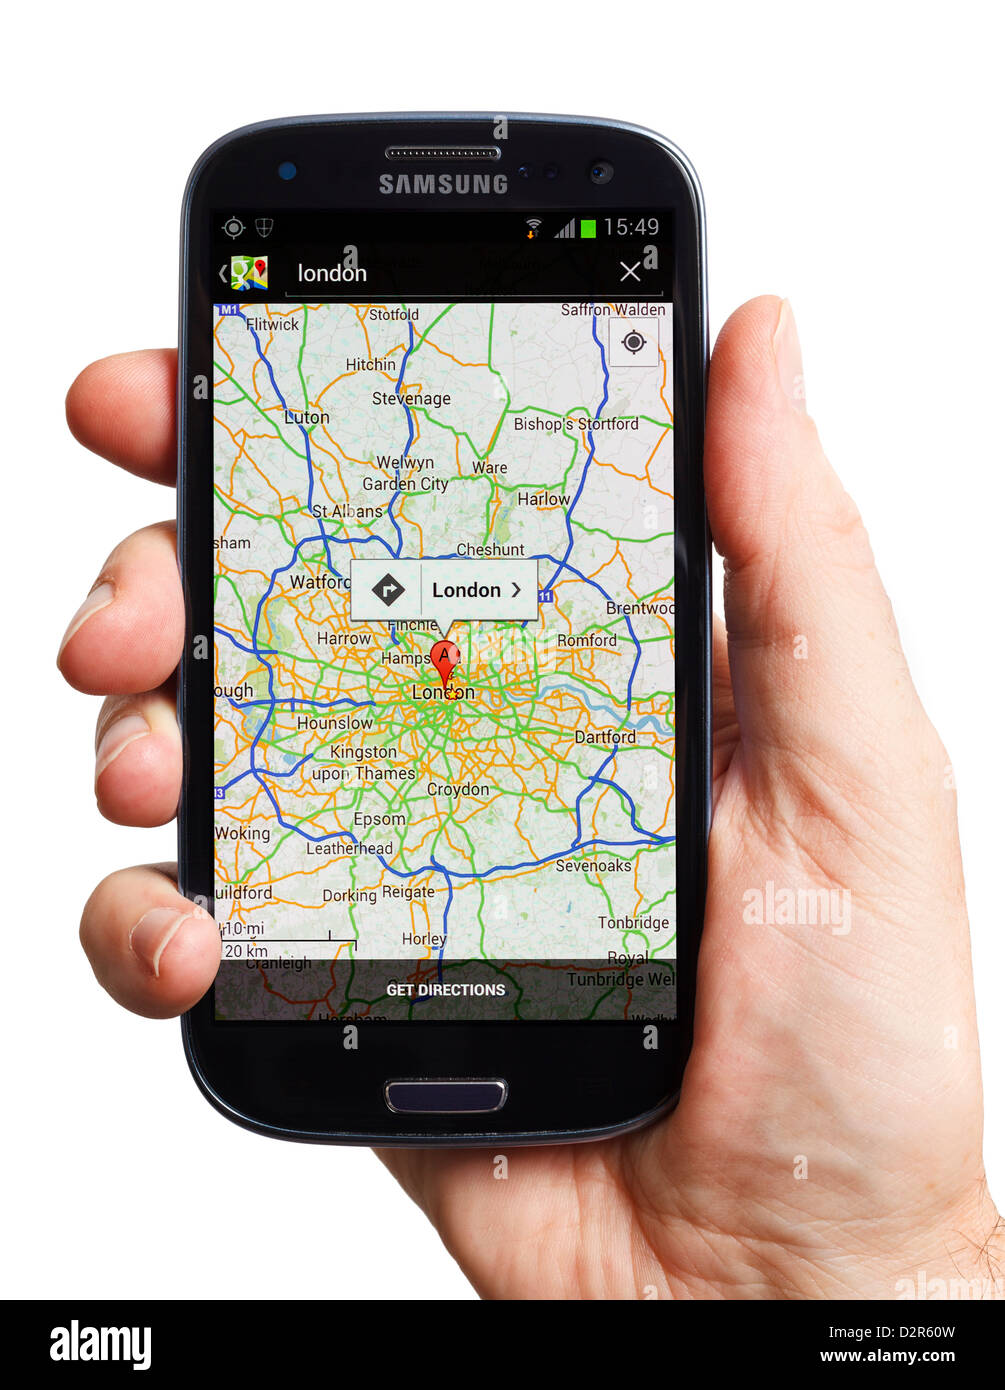 Google maps on an Android smartphone mobile phone smart ... on google maps android, iphone 5 mobile phone, google maps for car, nexus 7 mobile phone, google nexus mobile phone, google boost mobile phone, galaxy s4 mobile phone, google maps iphone,